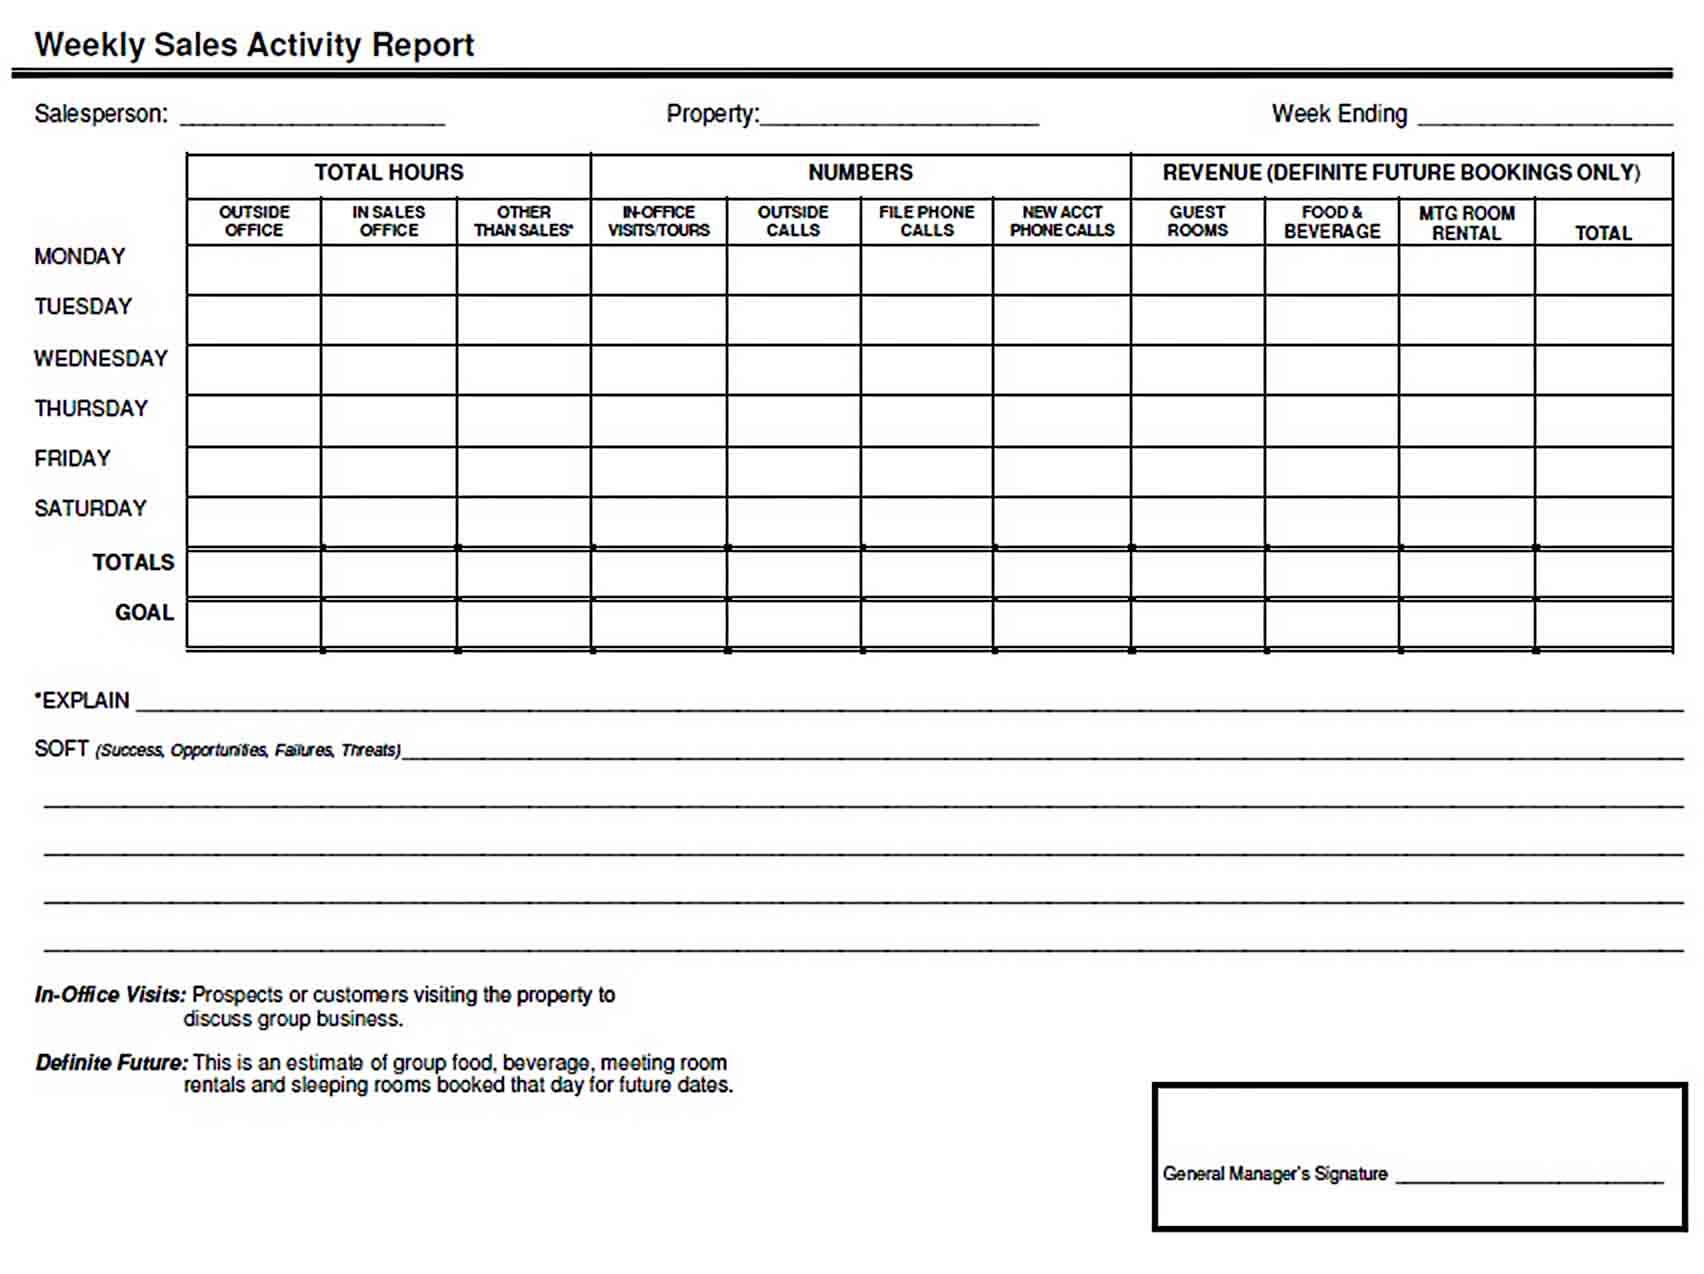 Templates Daily Sales Activity